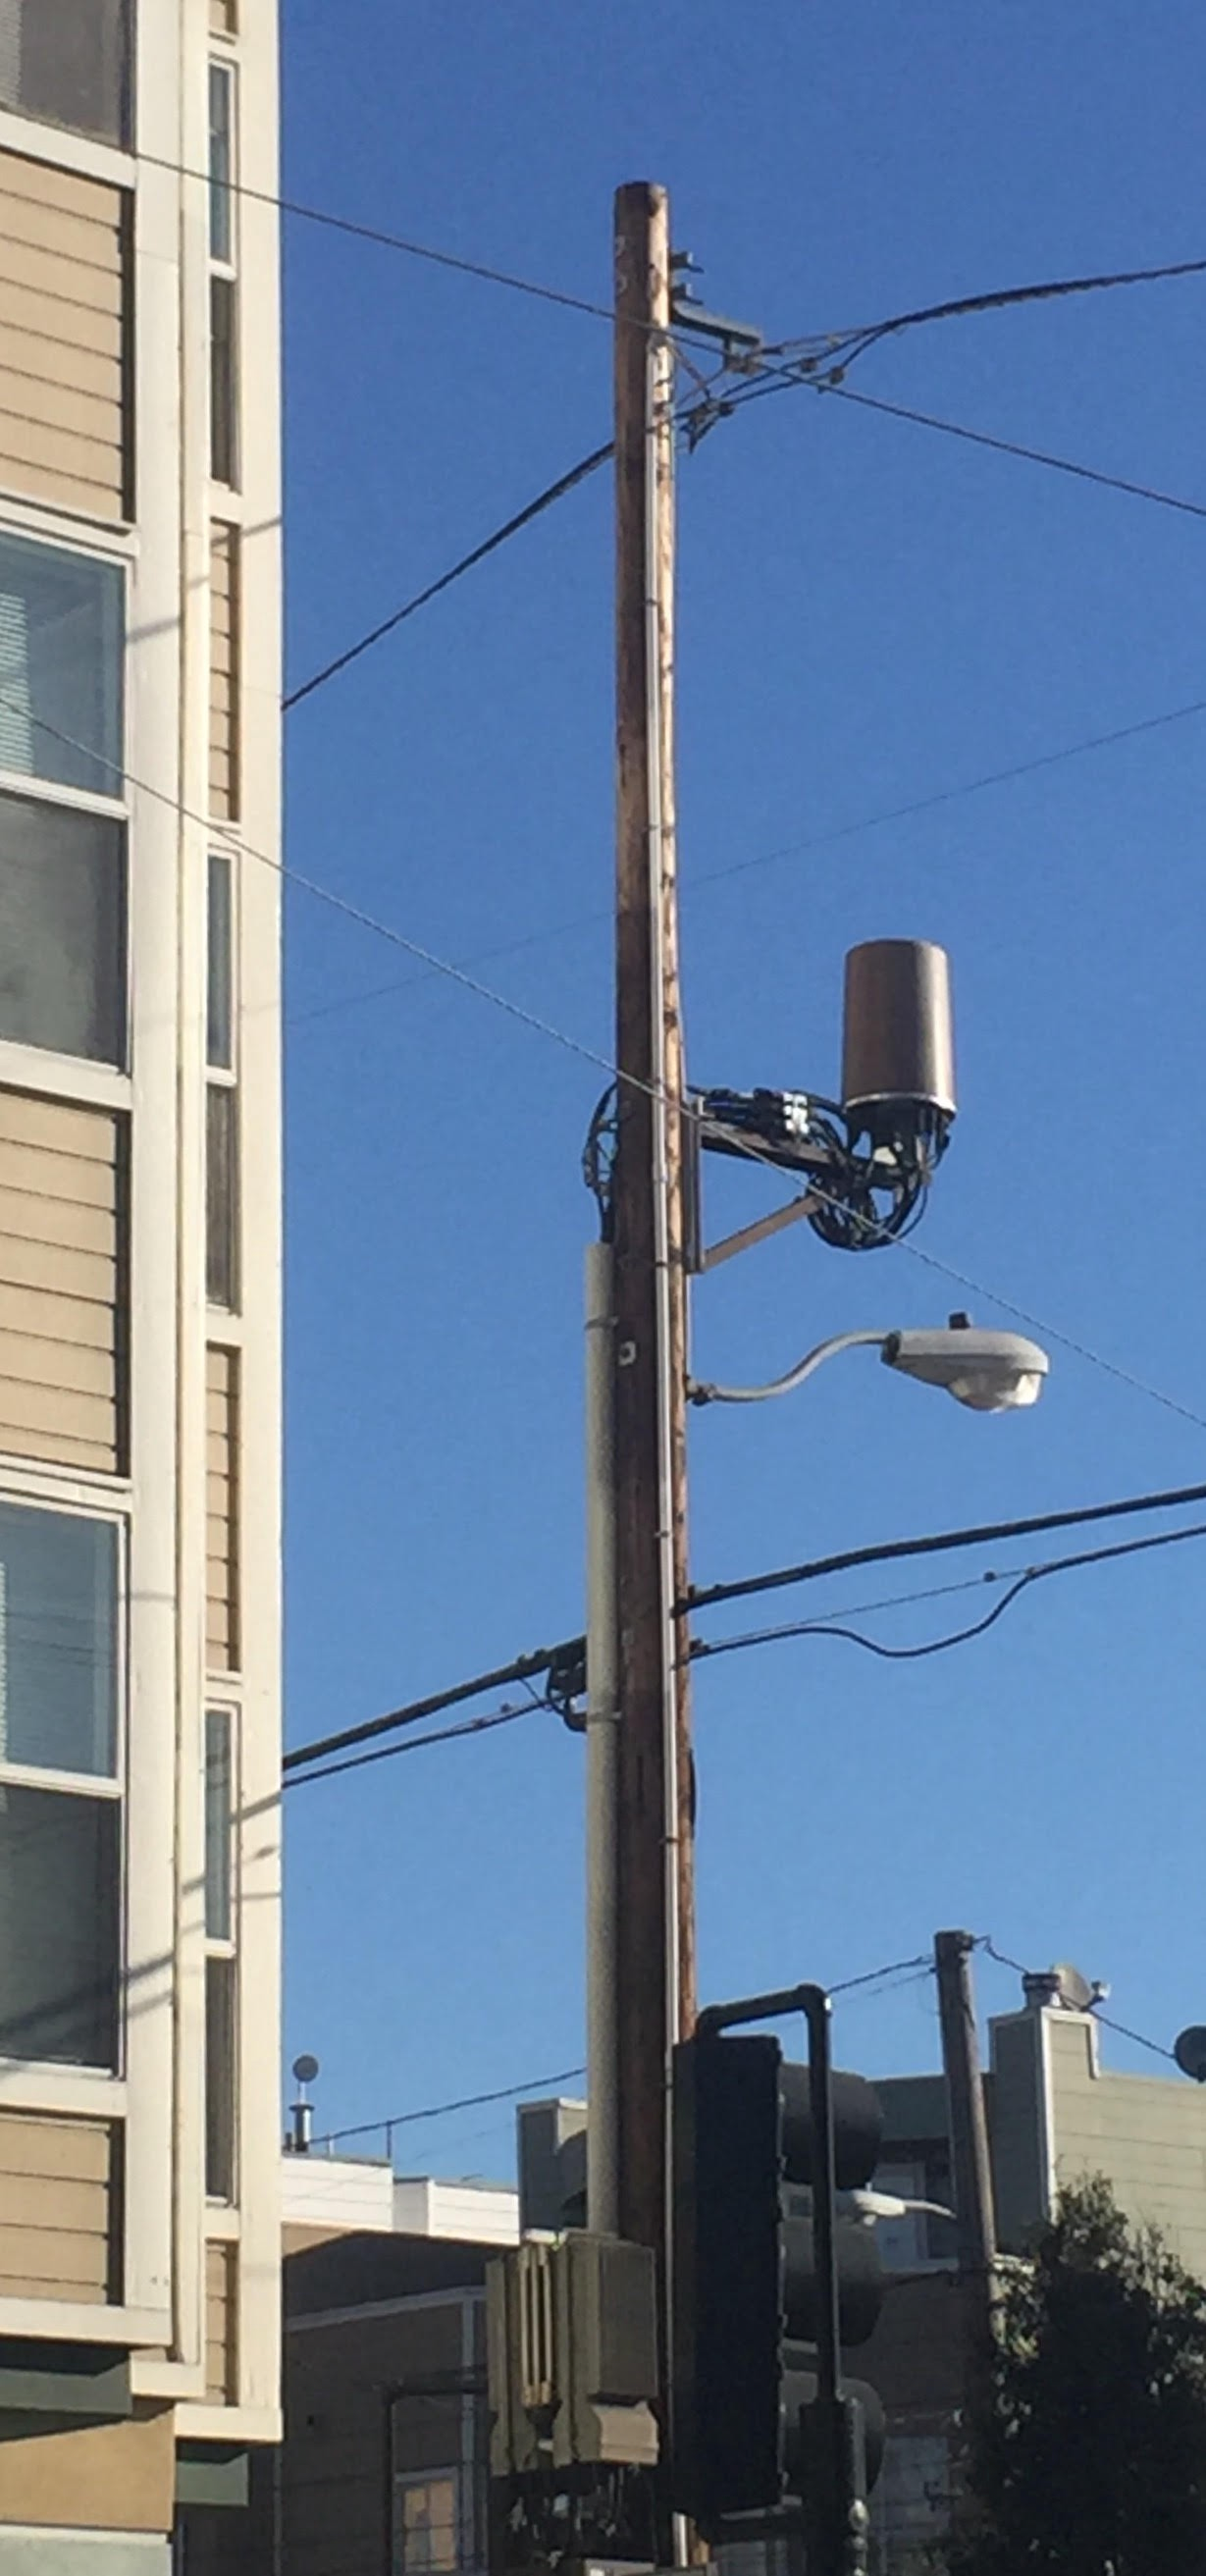 Part 4 | Design Tips for Small Cells Based on Pole or Location Type ...